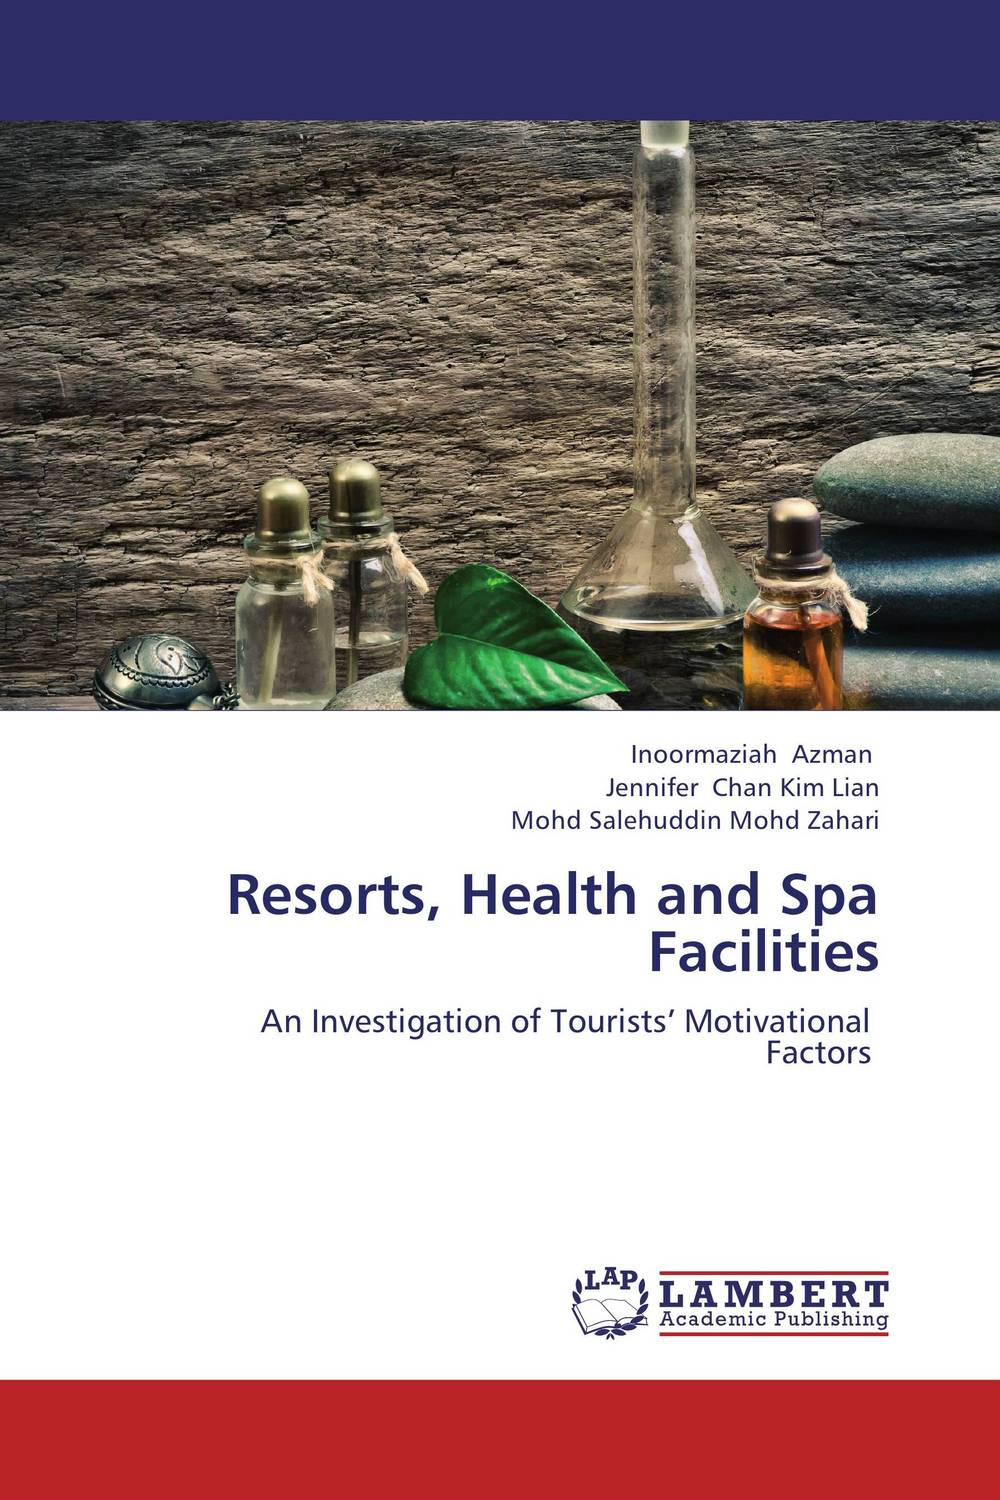 Resorts, Health and Spa Facilities marco zolow spirituality in health and wellness practices of older adults